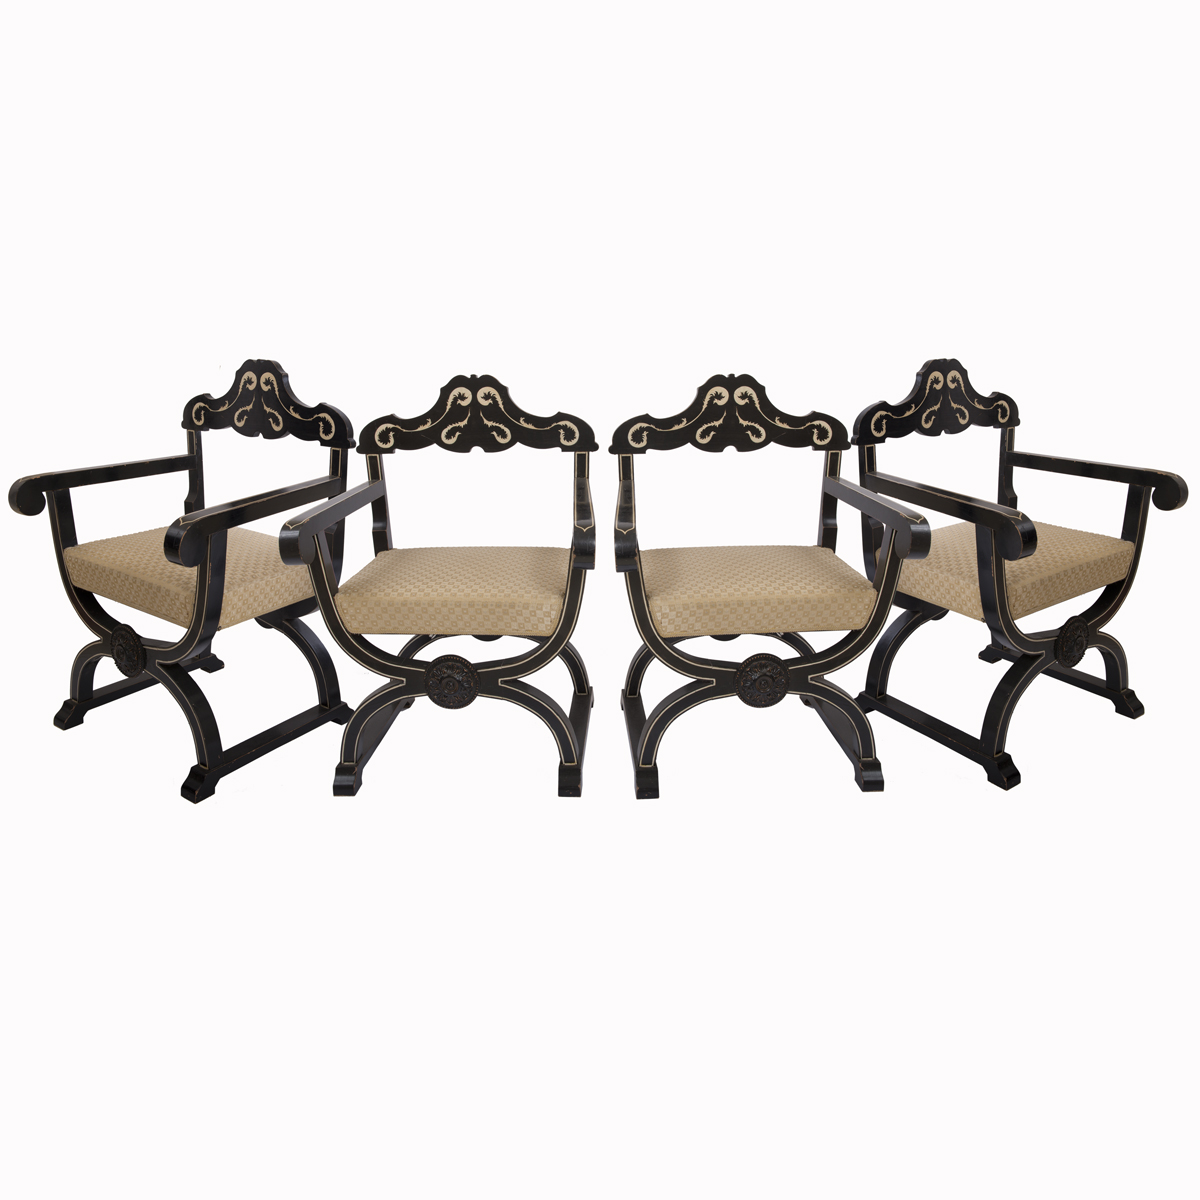 chairs - wooden dinning room set.jpg